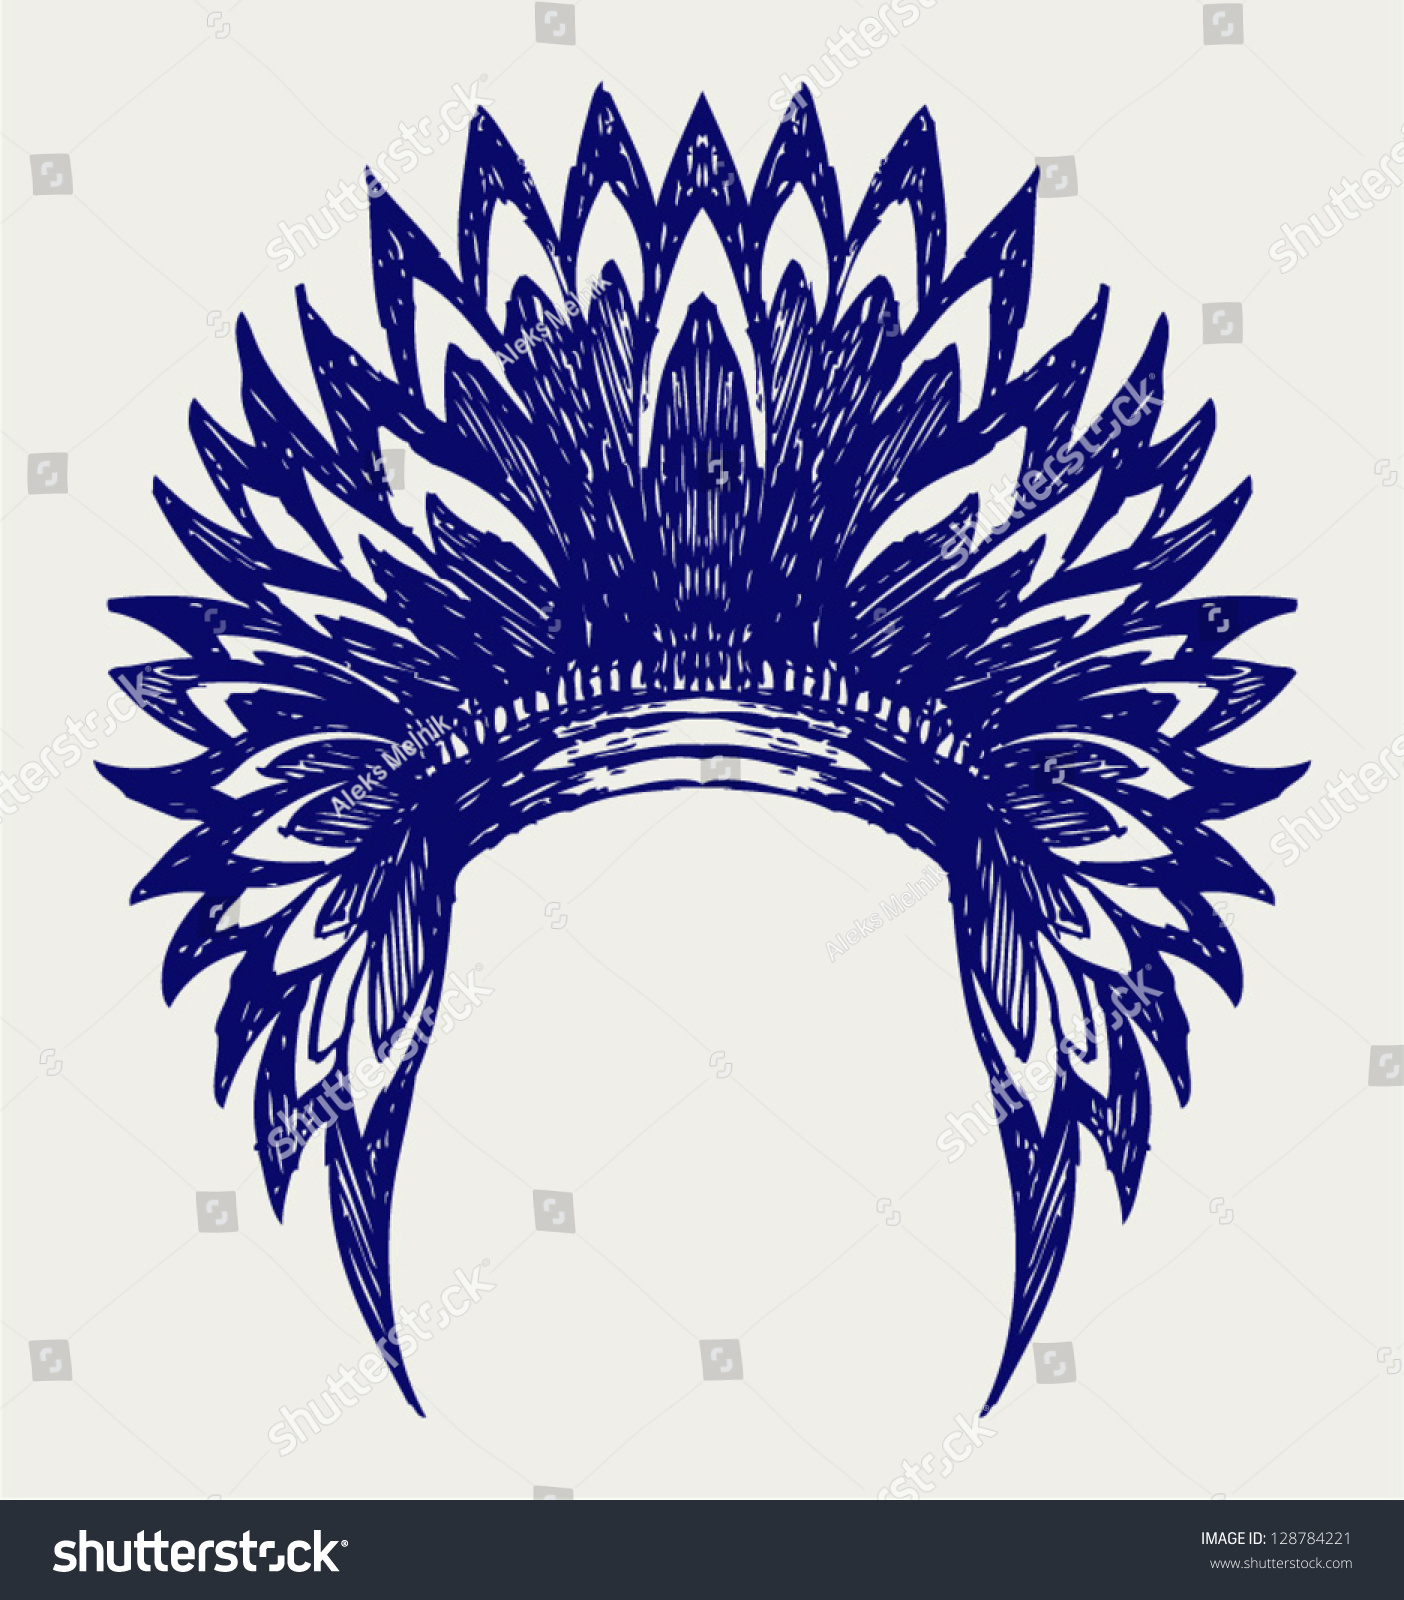 hight resolution of source image shutterstock com report thanksgiving indian headdress clipart